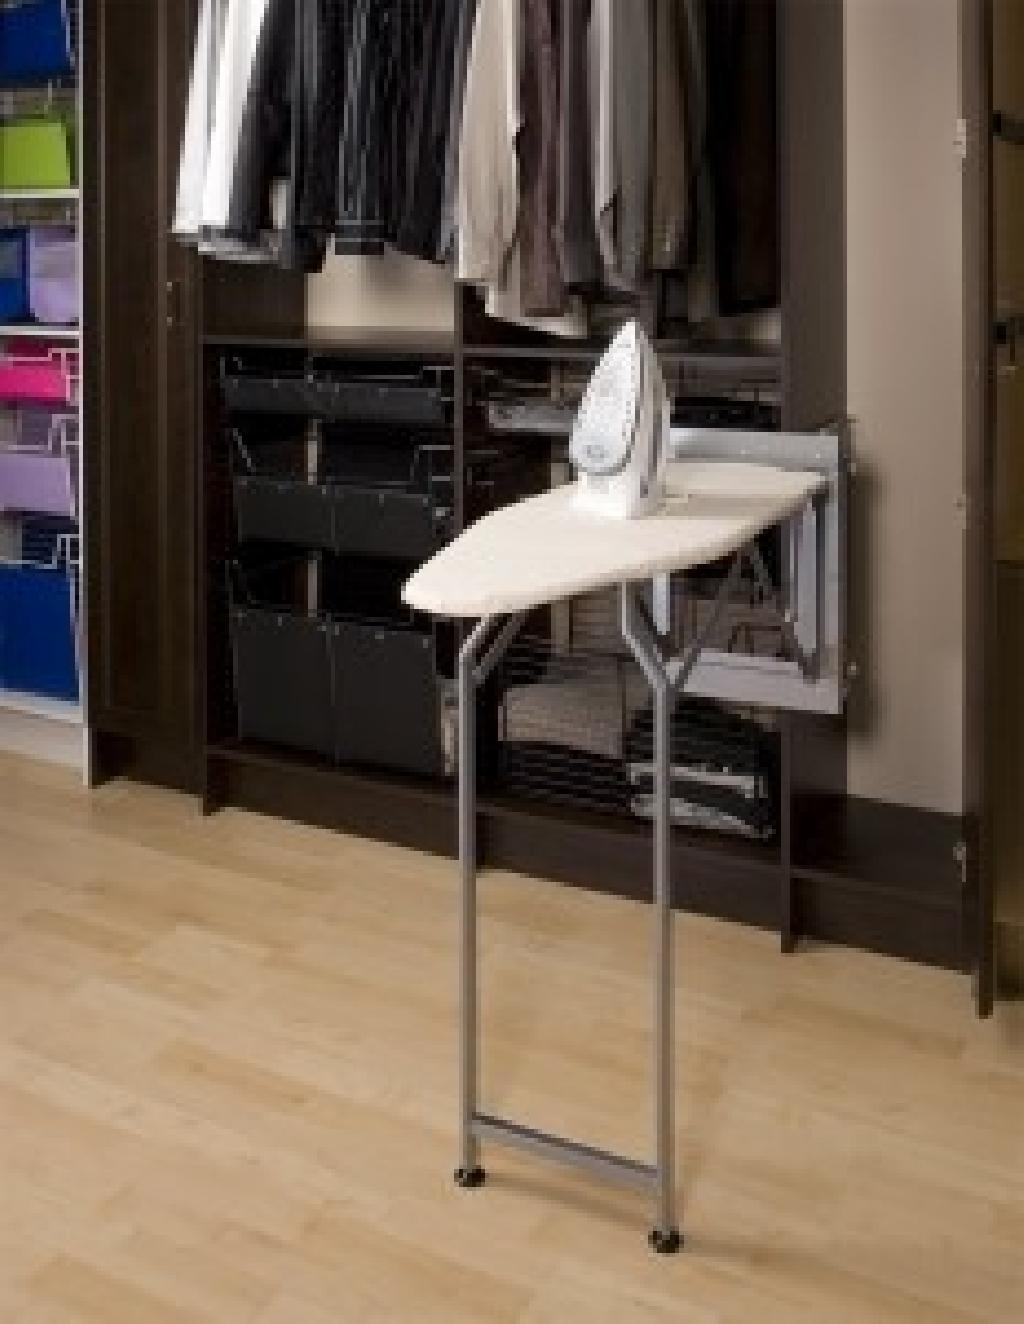 Sidelines pressing perfection ironing board closet for Iron closet storage